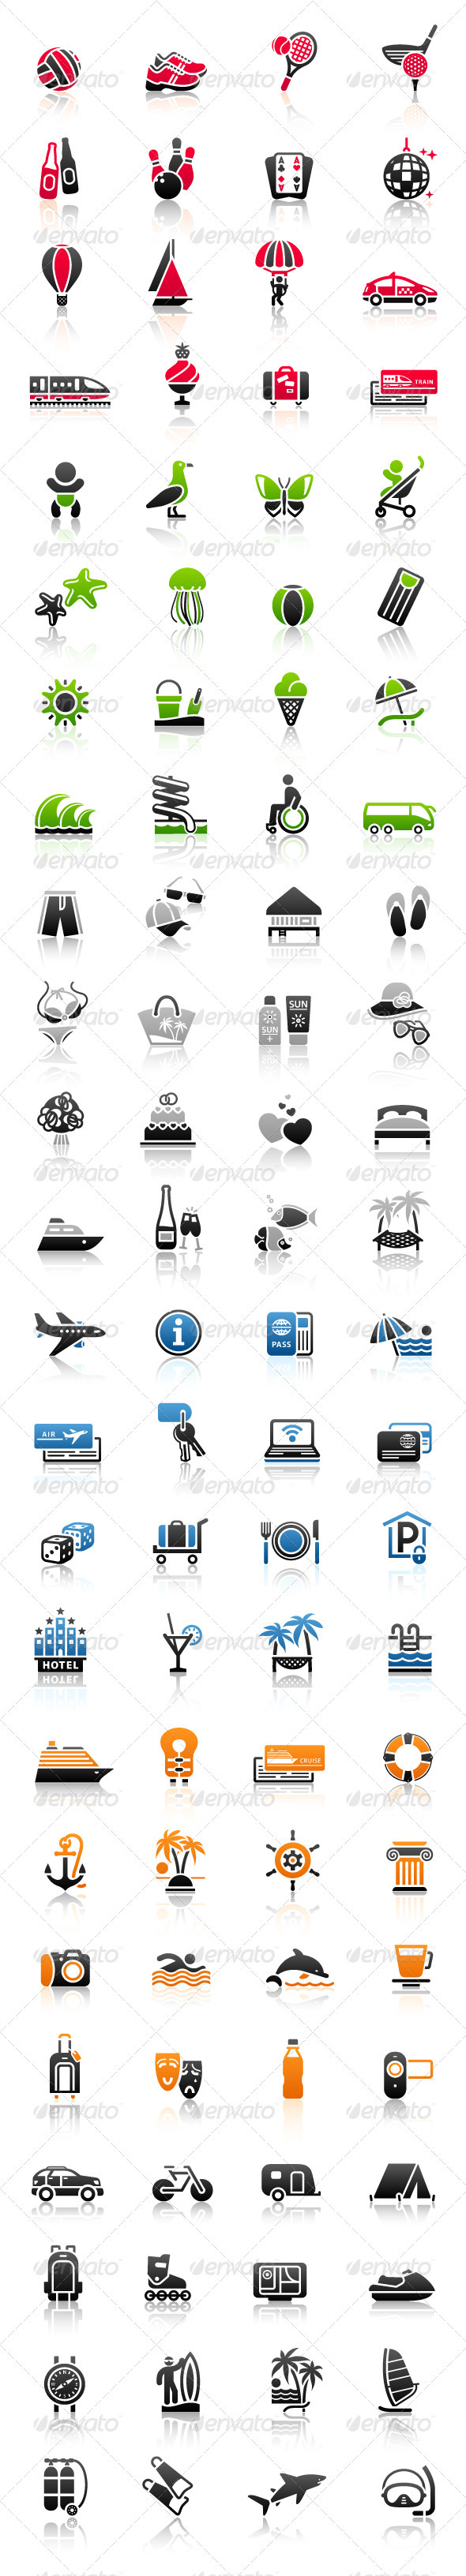 GraphicRiver Vacation Signs Travel Symbols Recreation Icons 3661189